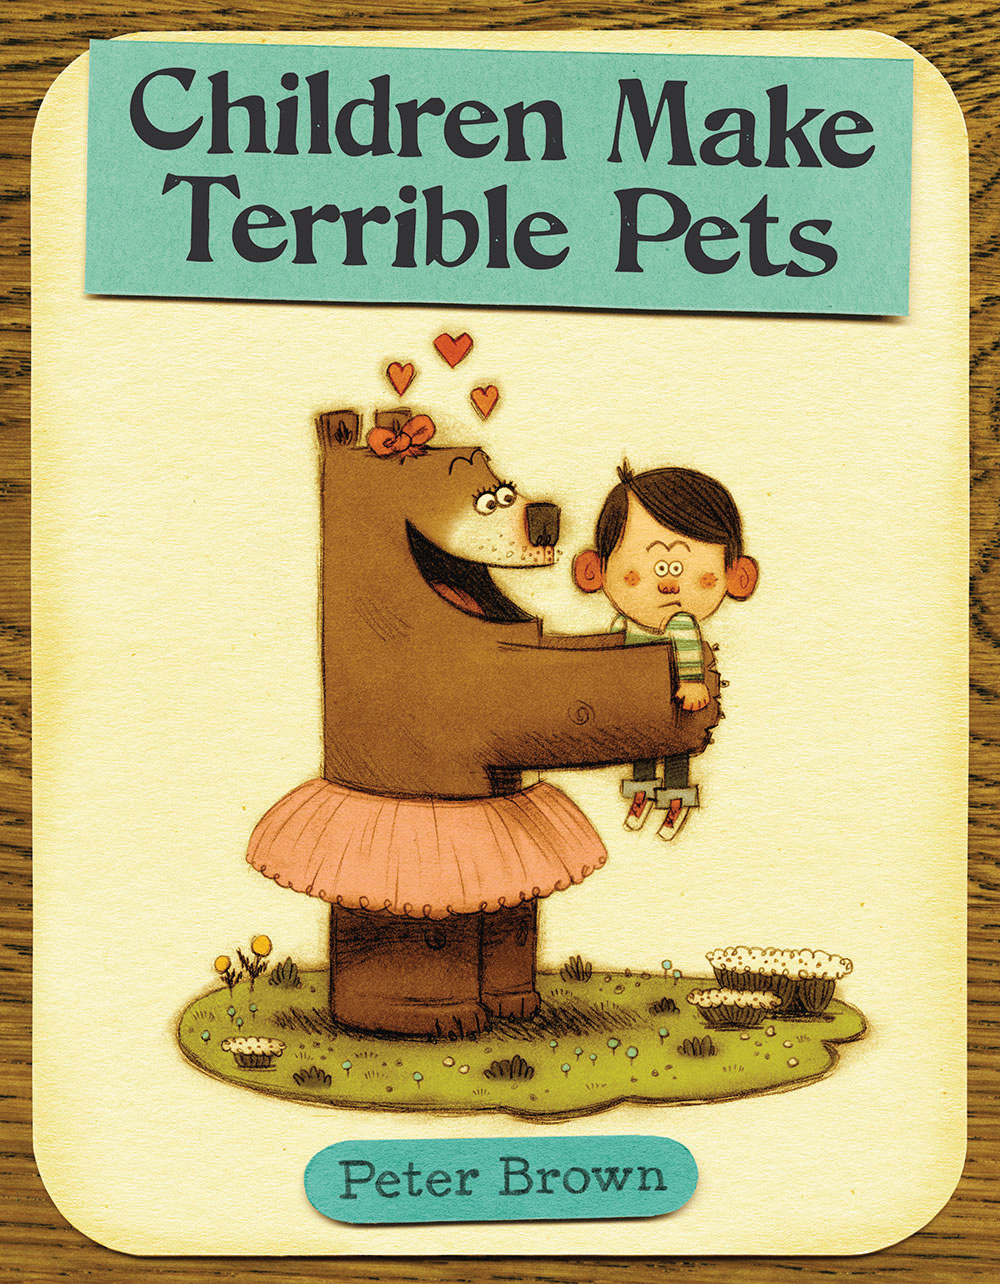 Brown, Peter 2010_09 - CHILDREN MAKE TERRIBLE PETS - PB - RLM PR.jpg